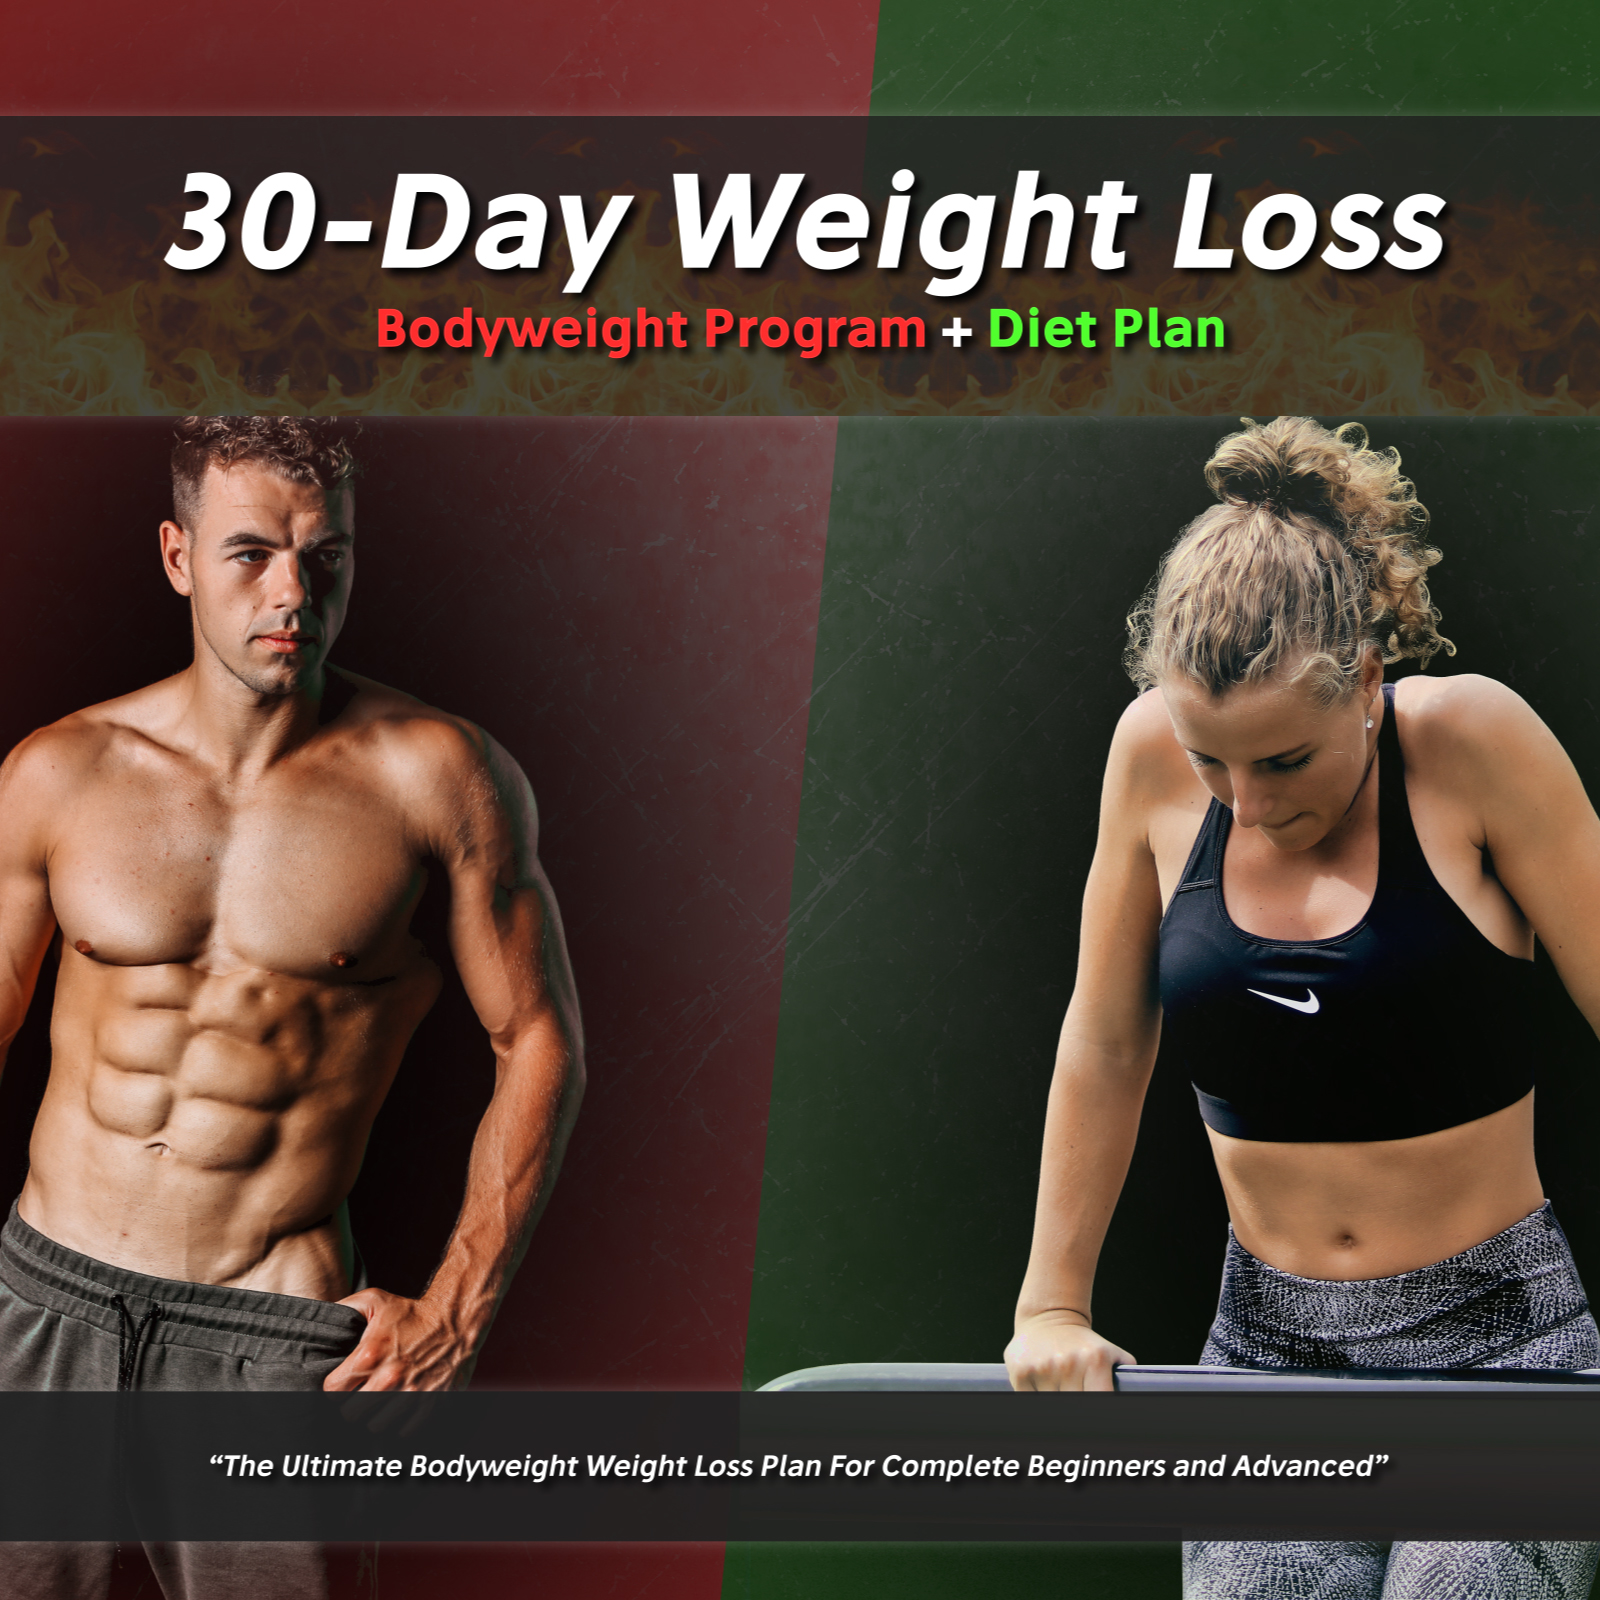 Weight Loss and Diet Proram